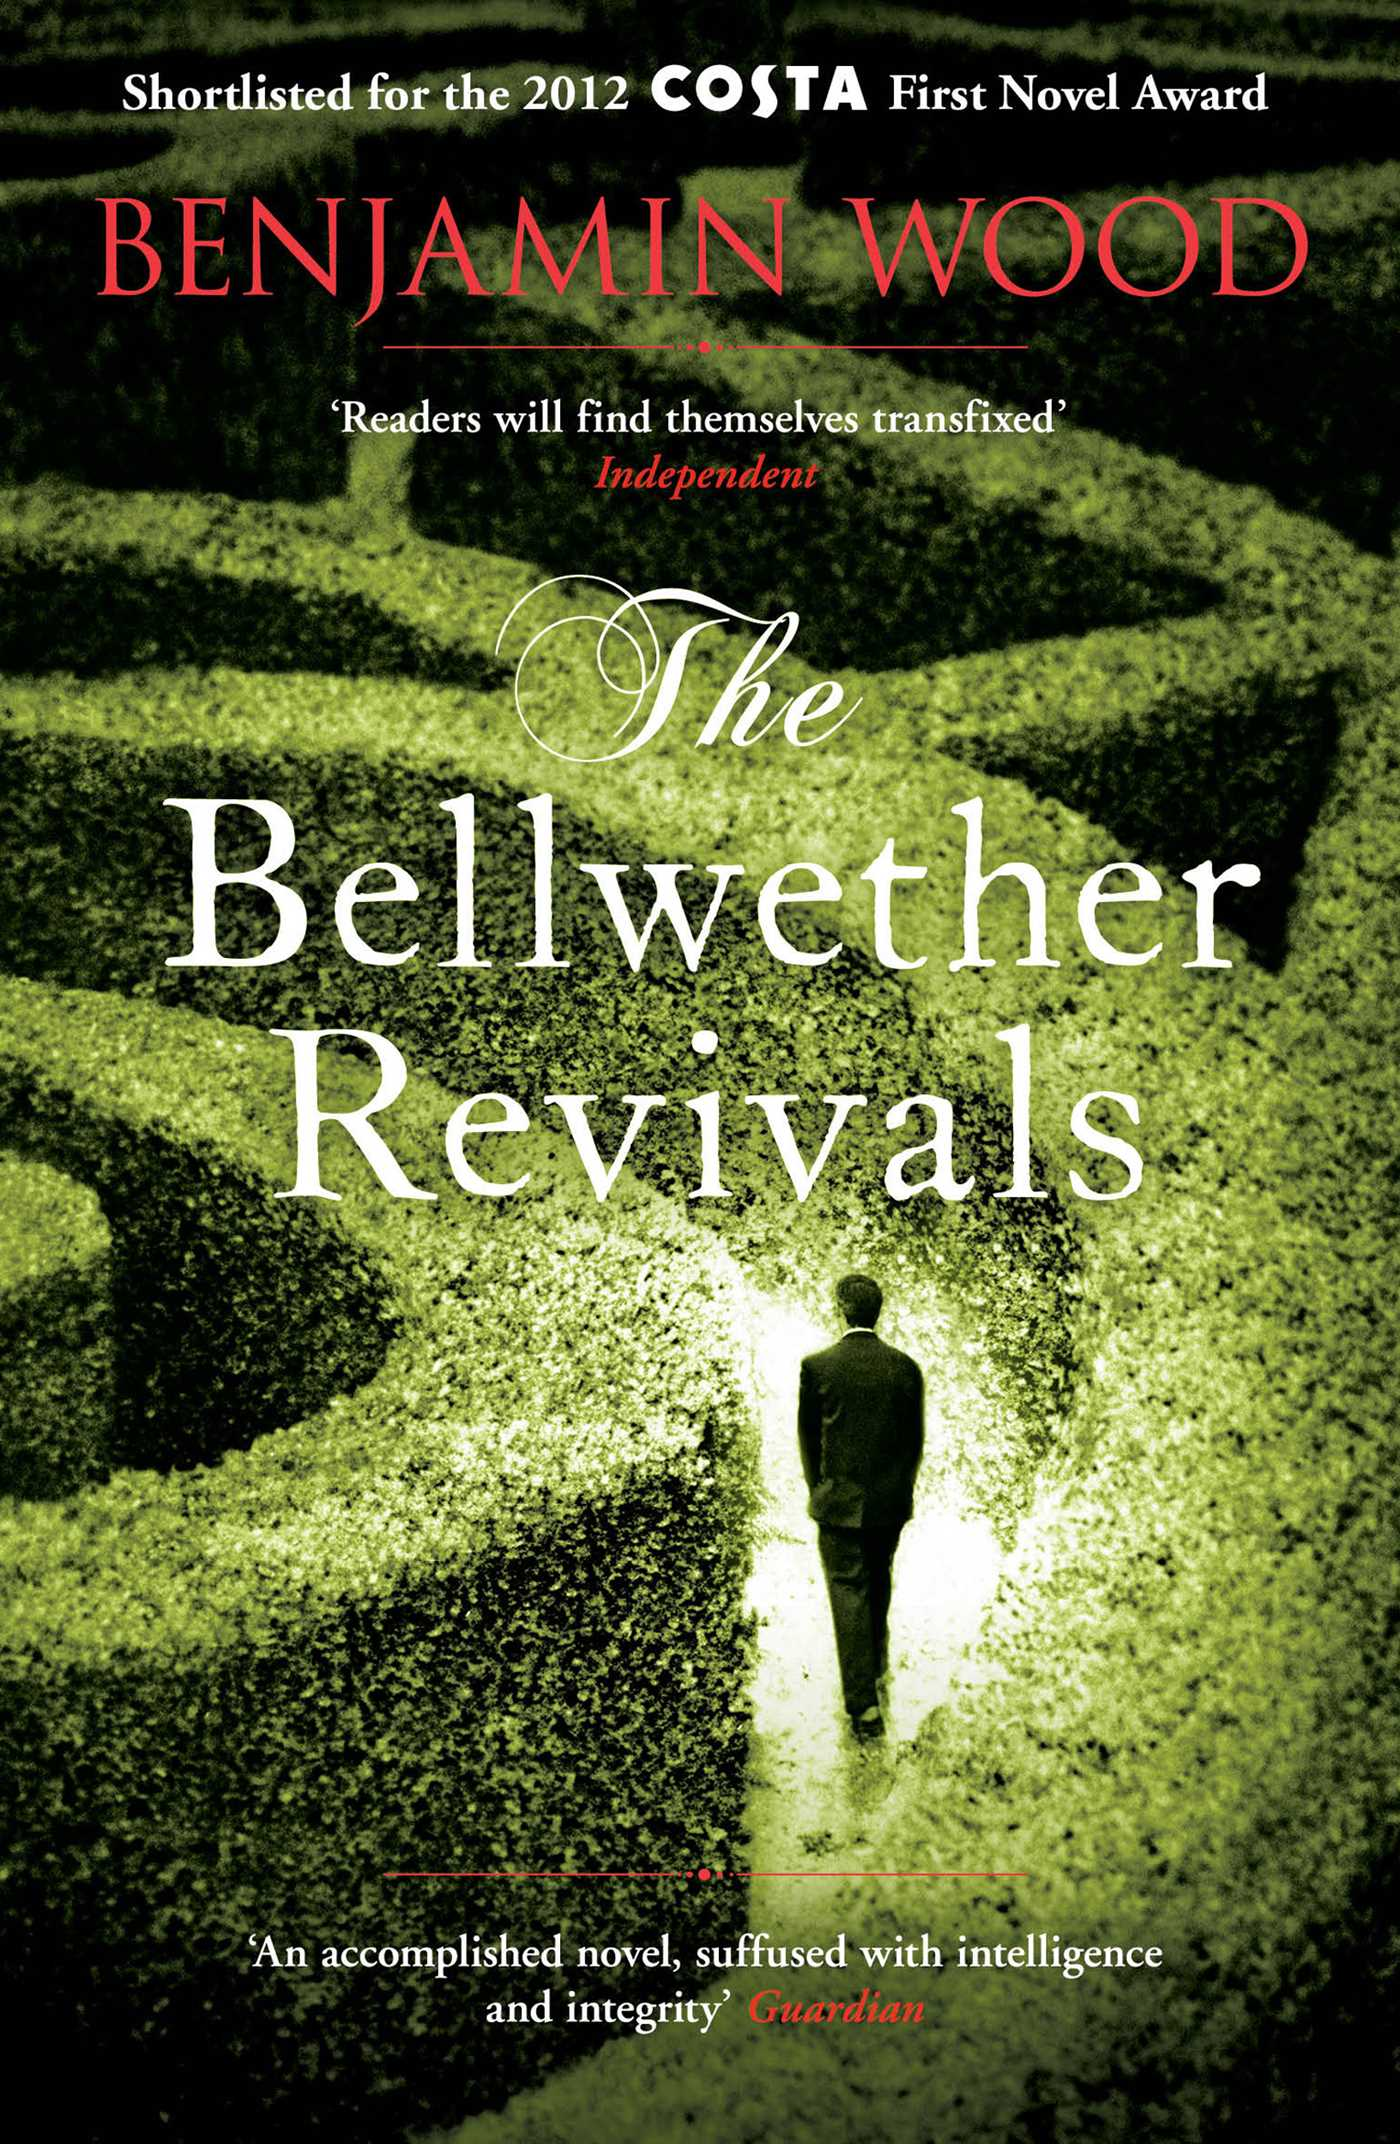 The bellwether revivals 9780857206961 hr